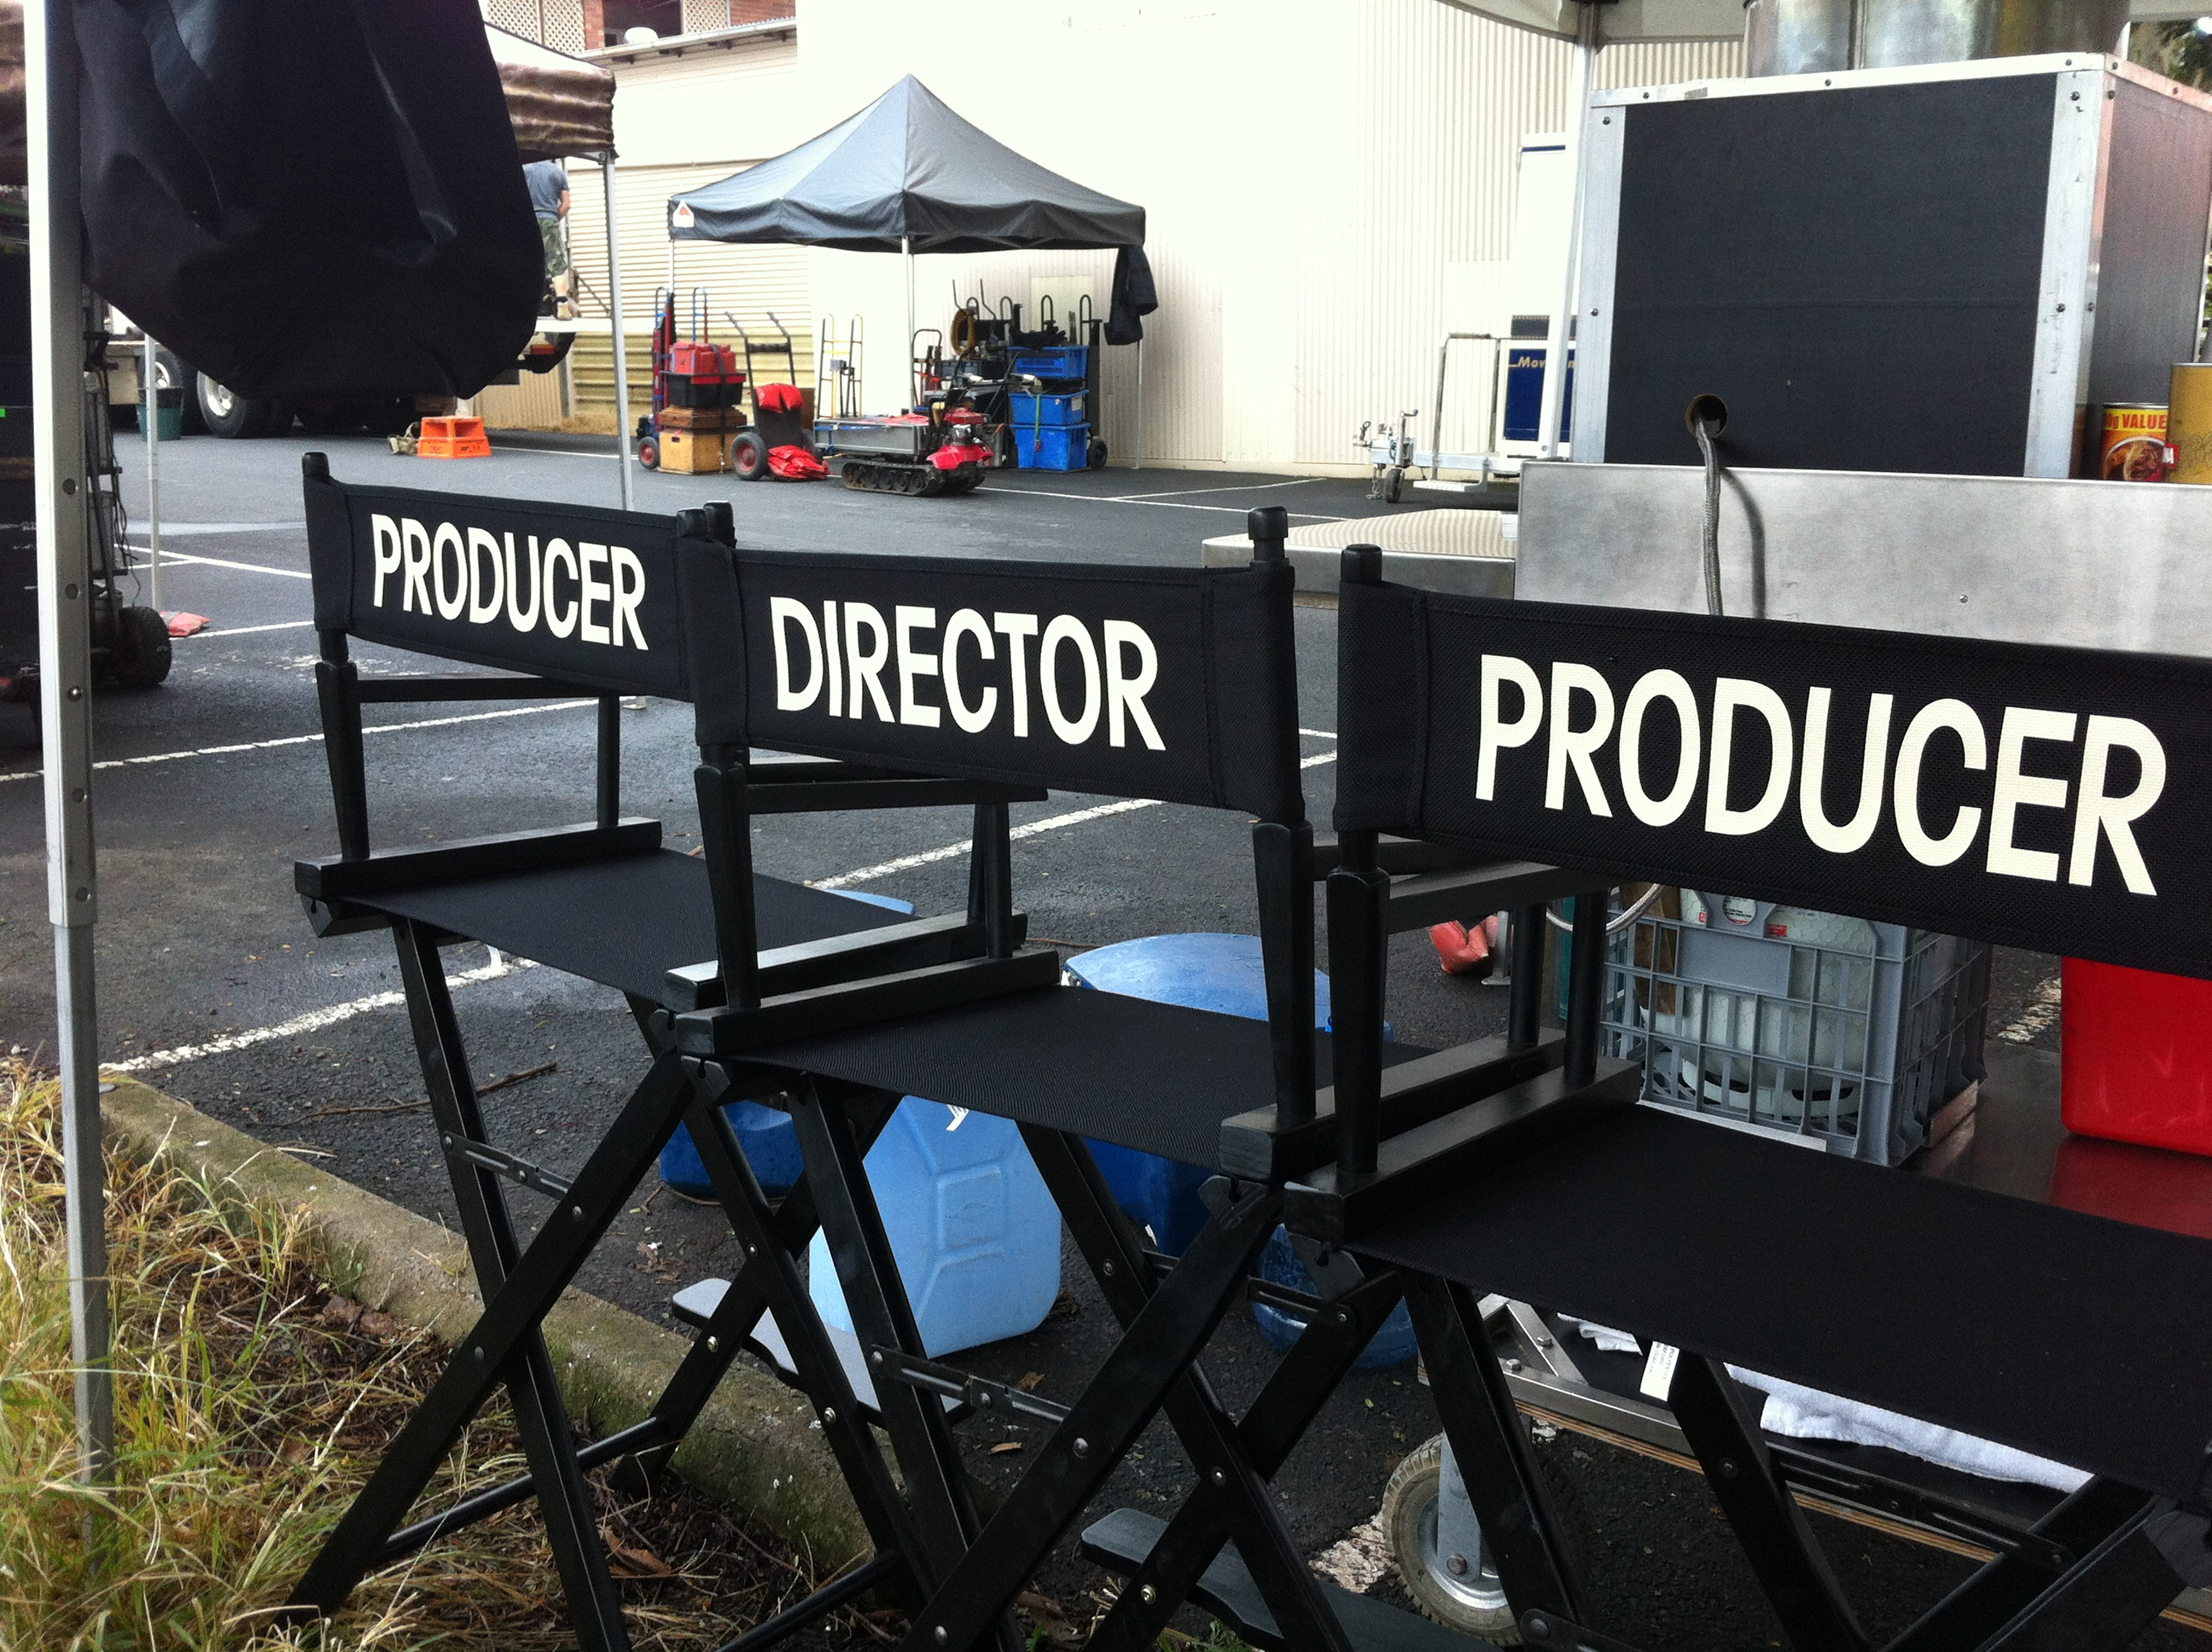 Feature films production